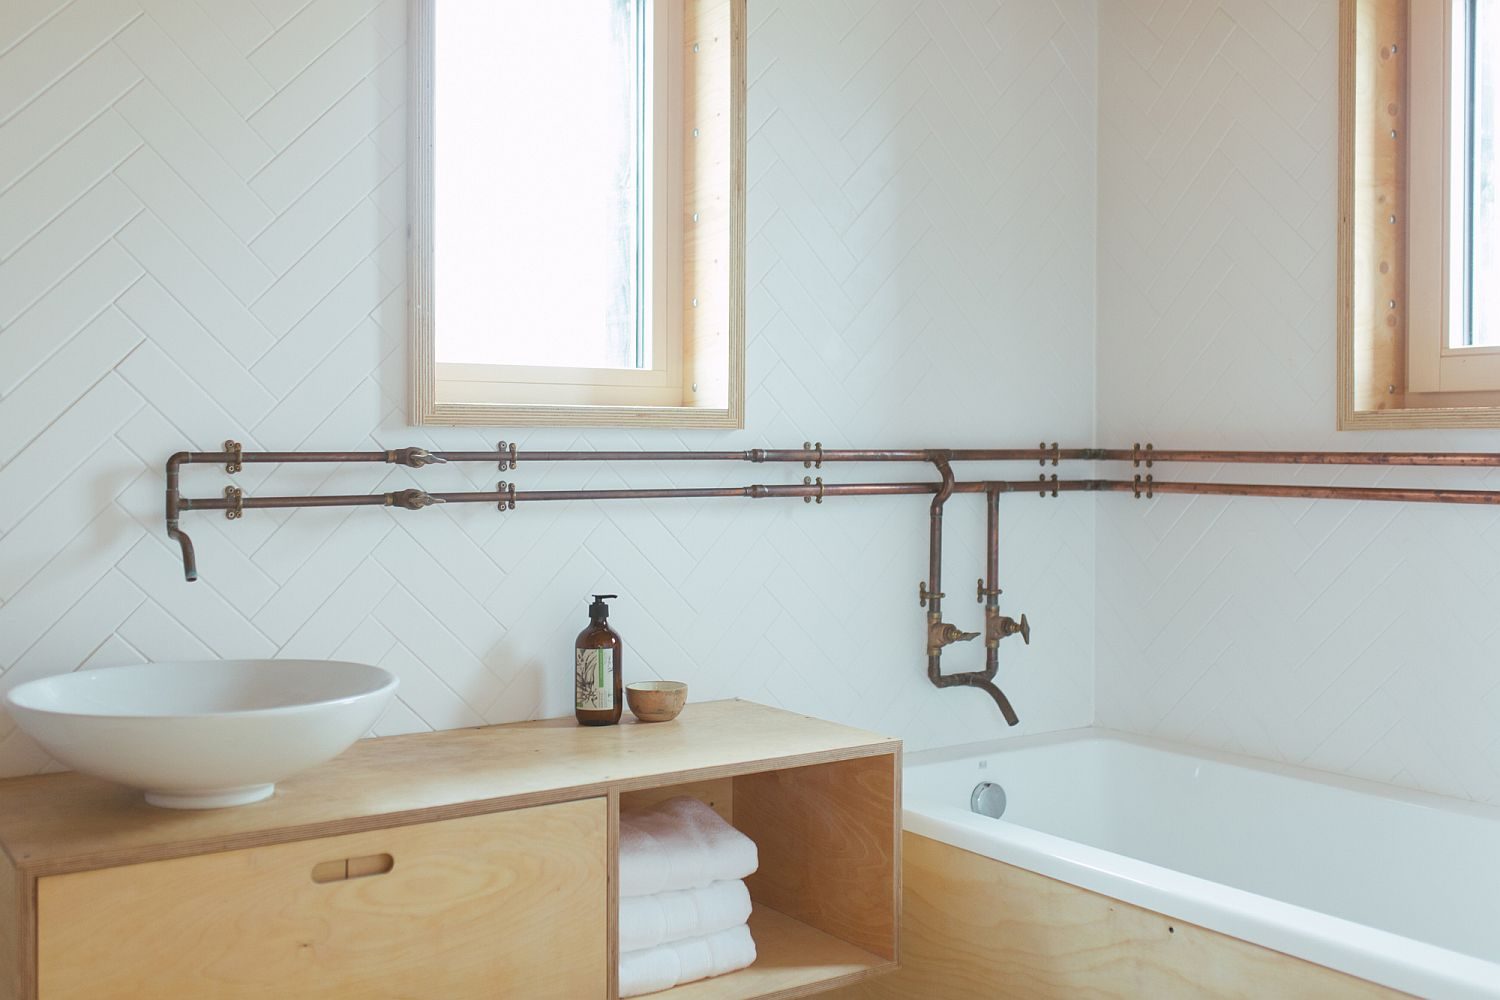 White-and-wood-color-scheme-for-the-modern-bathroom